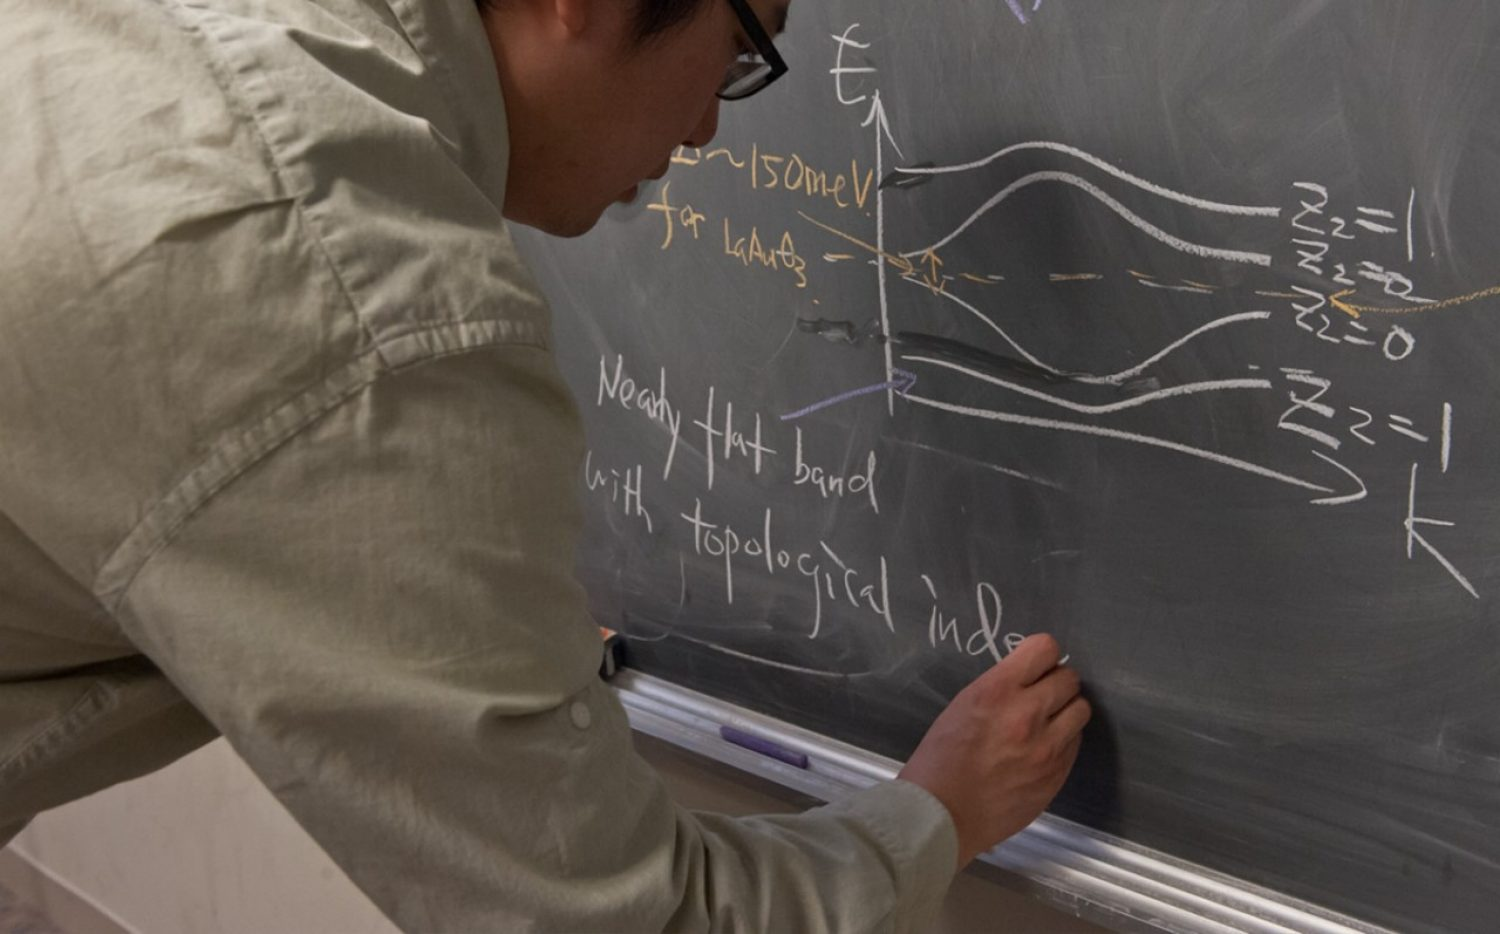 Researcher writing and equation on blackboard